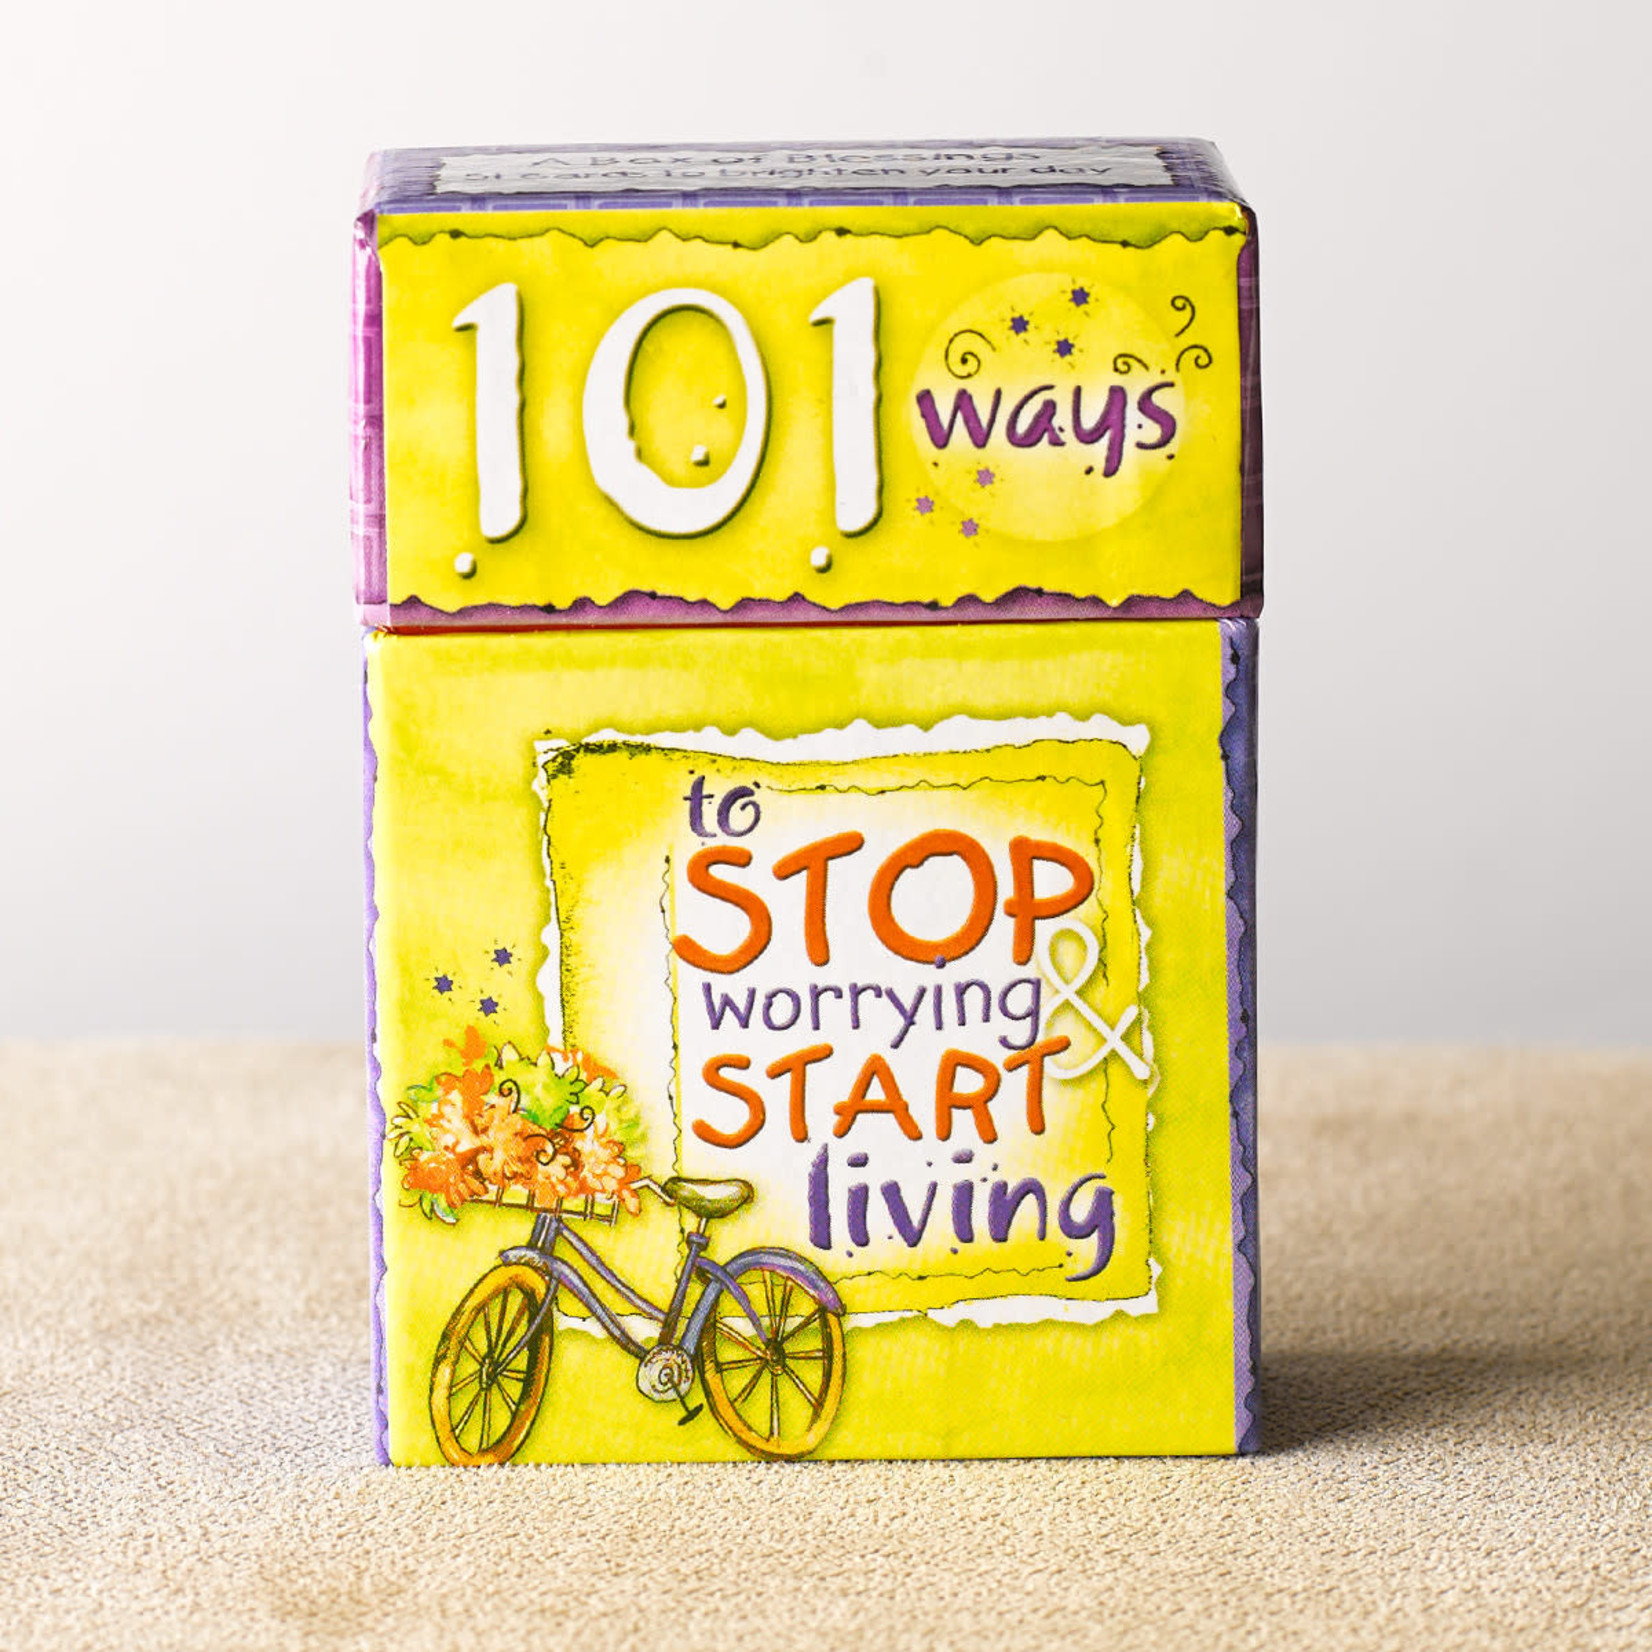 Christian Art Gifts 101 Ways to Stop Worrying & Start Living - Box of Blessings